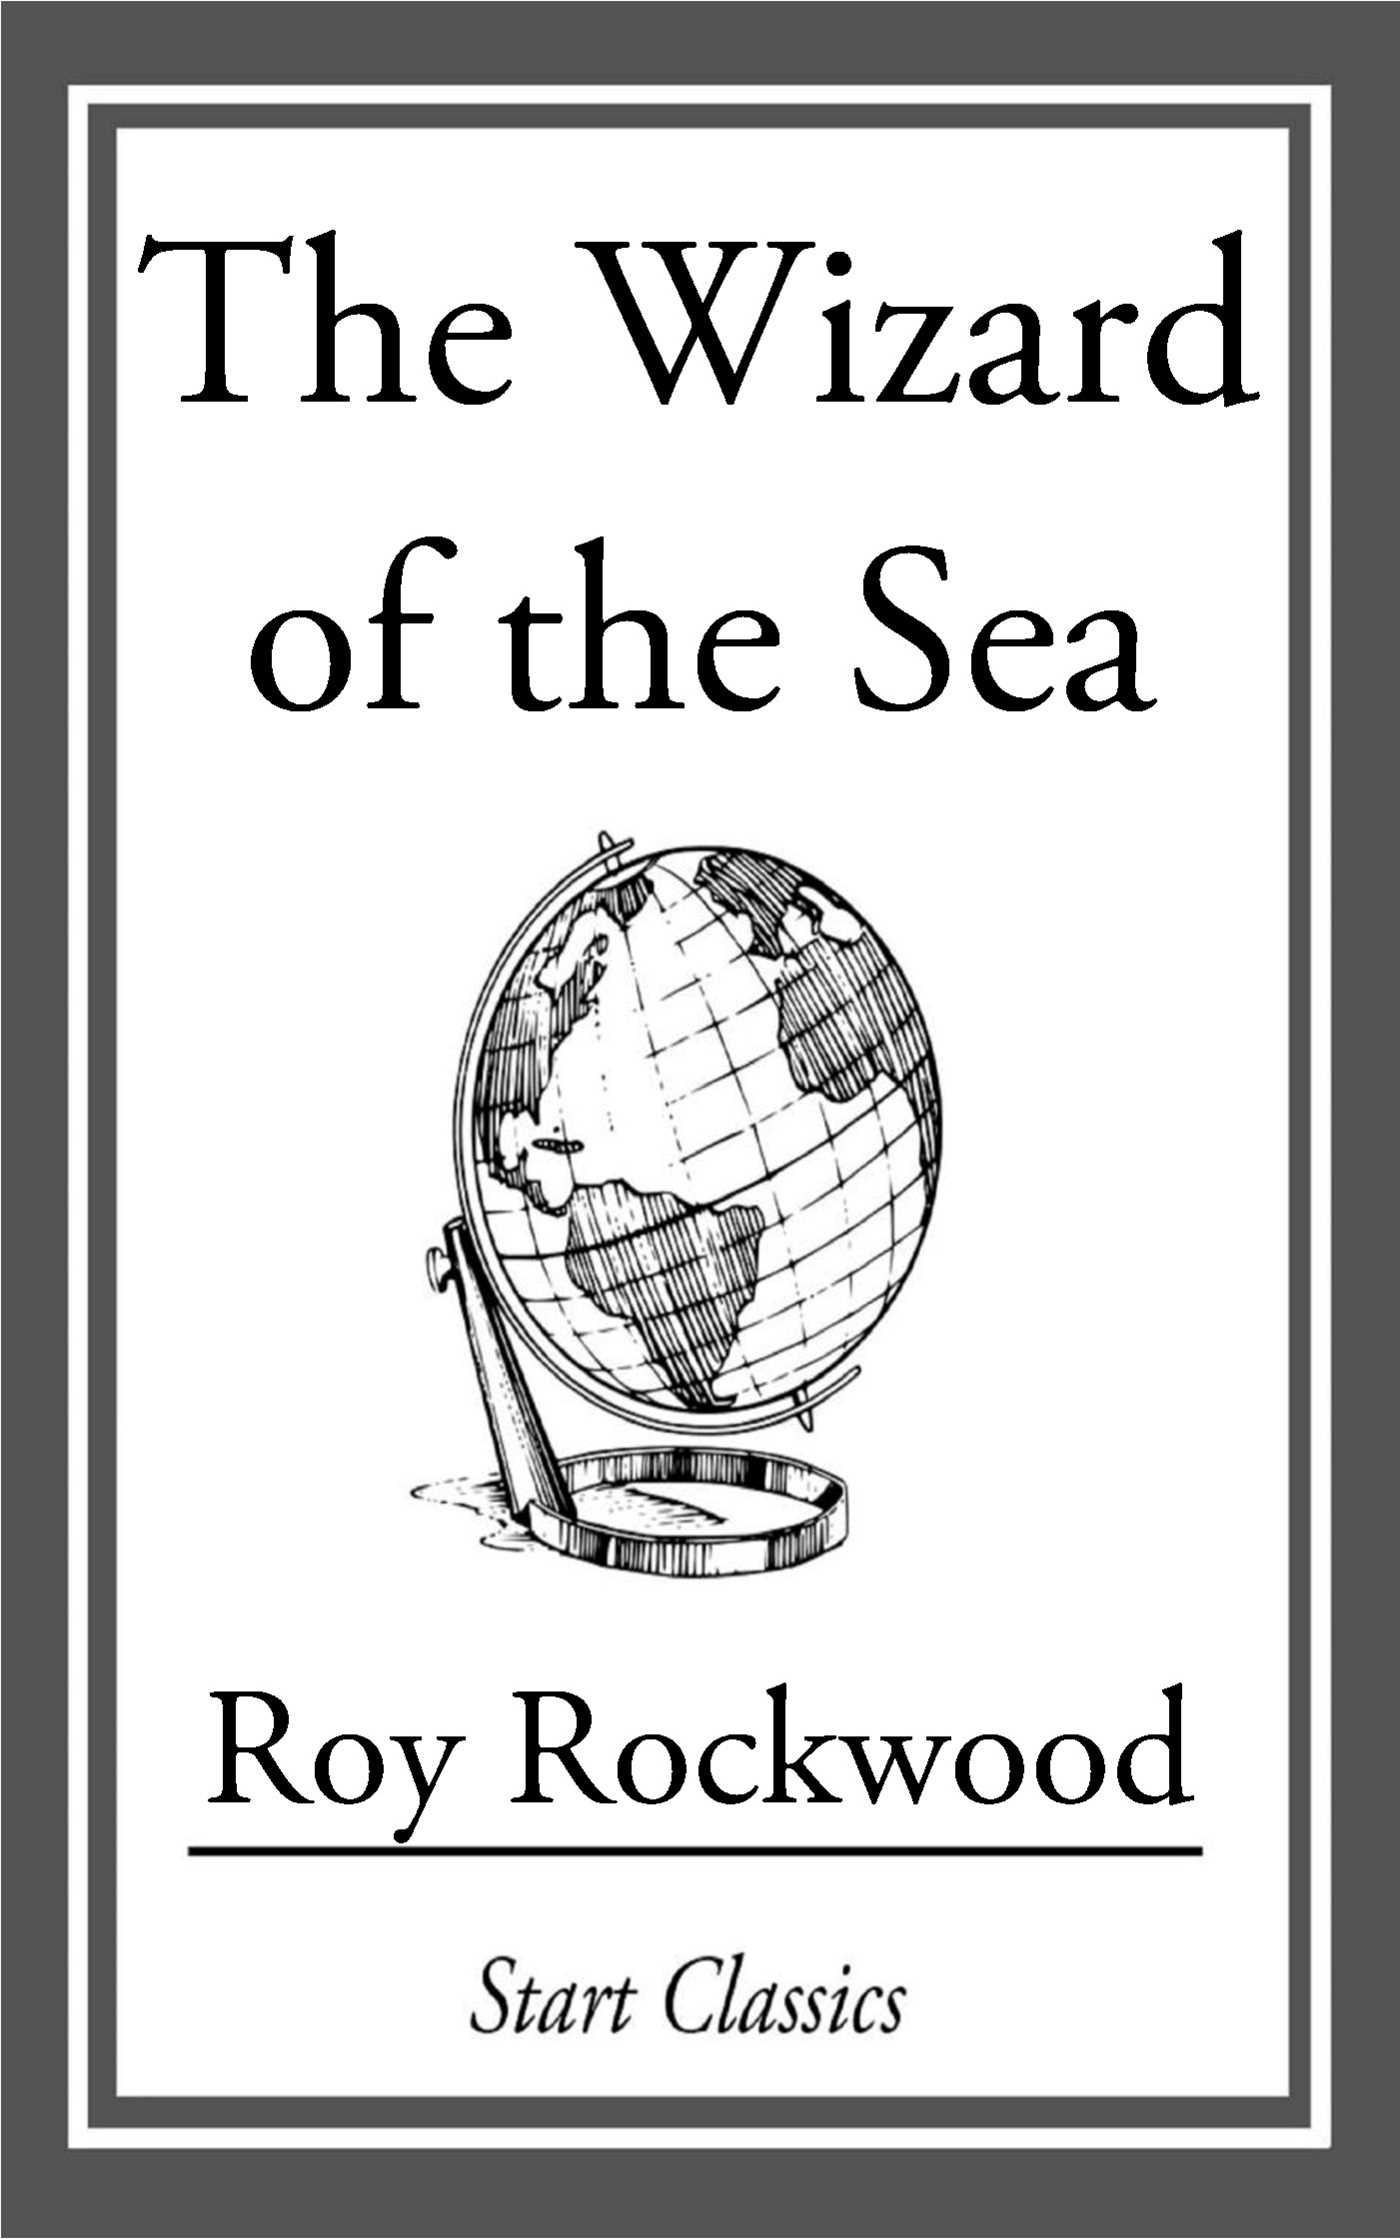 Wizard hd manual ebook category ebooks and ebook sales array the wizard of the sea ebook by roy rockwood official publisher rh simonandschuster com fandeluxe Images